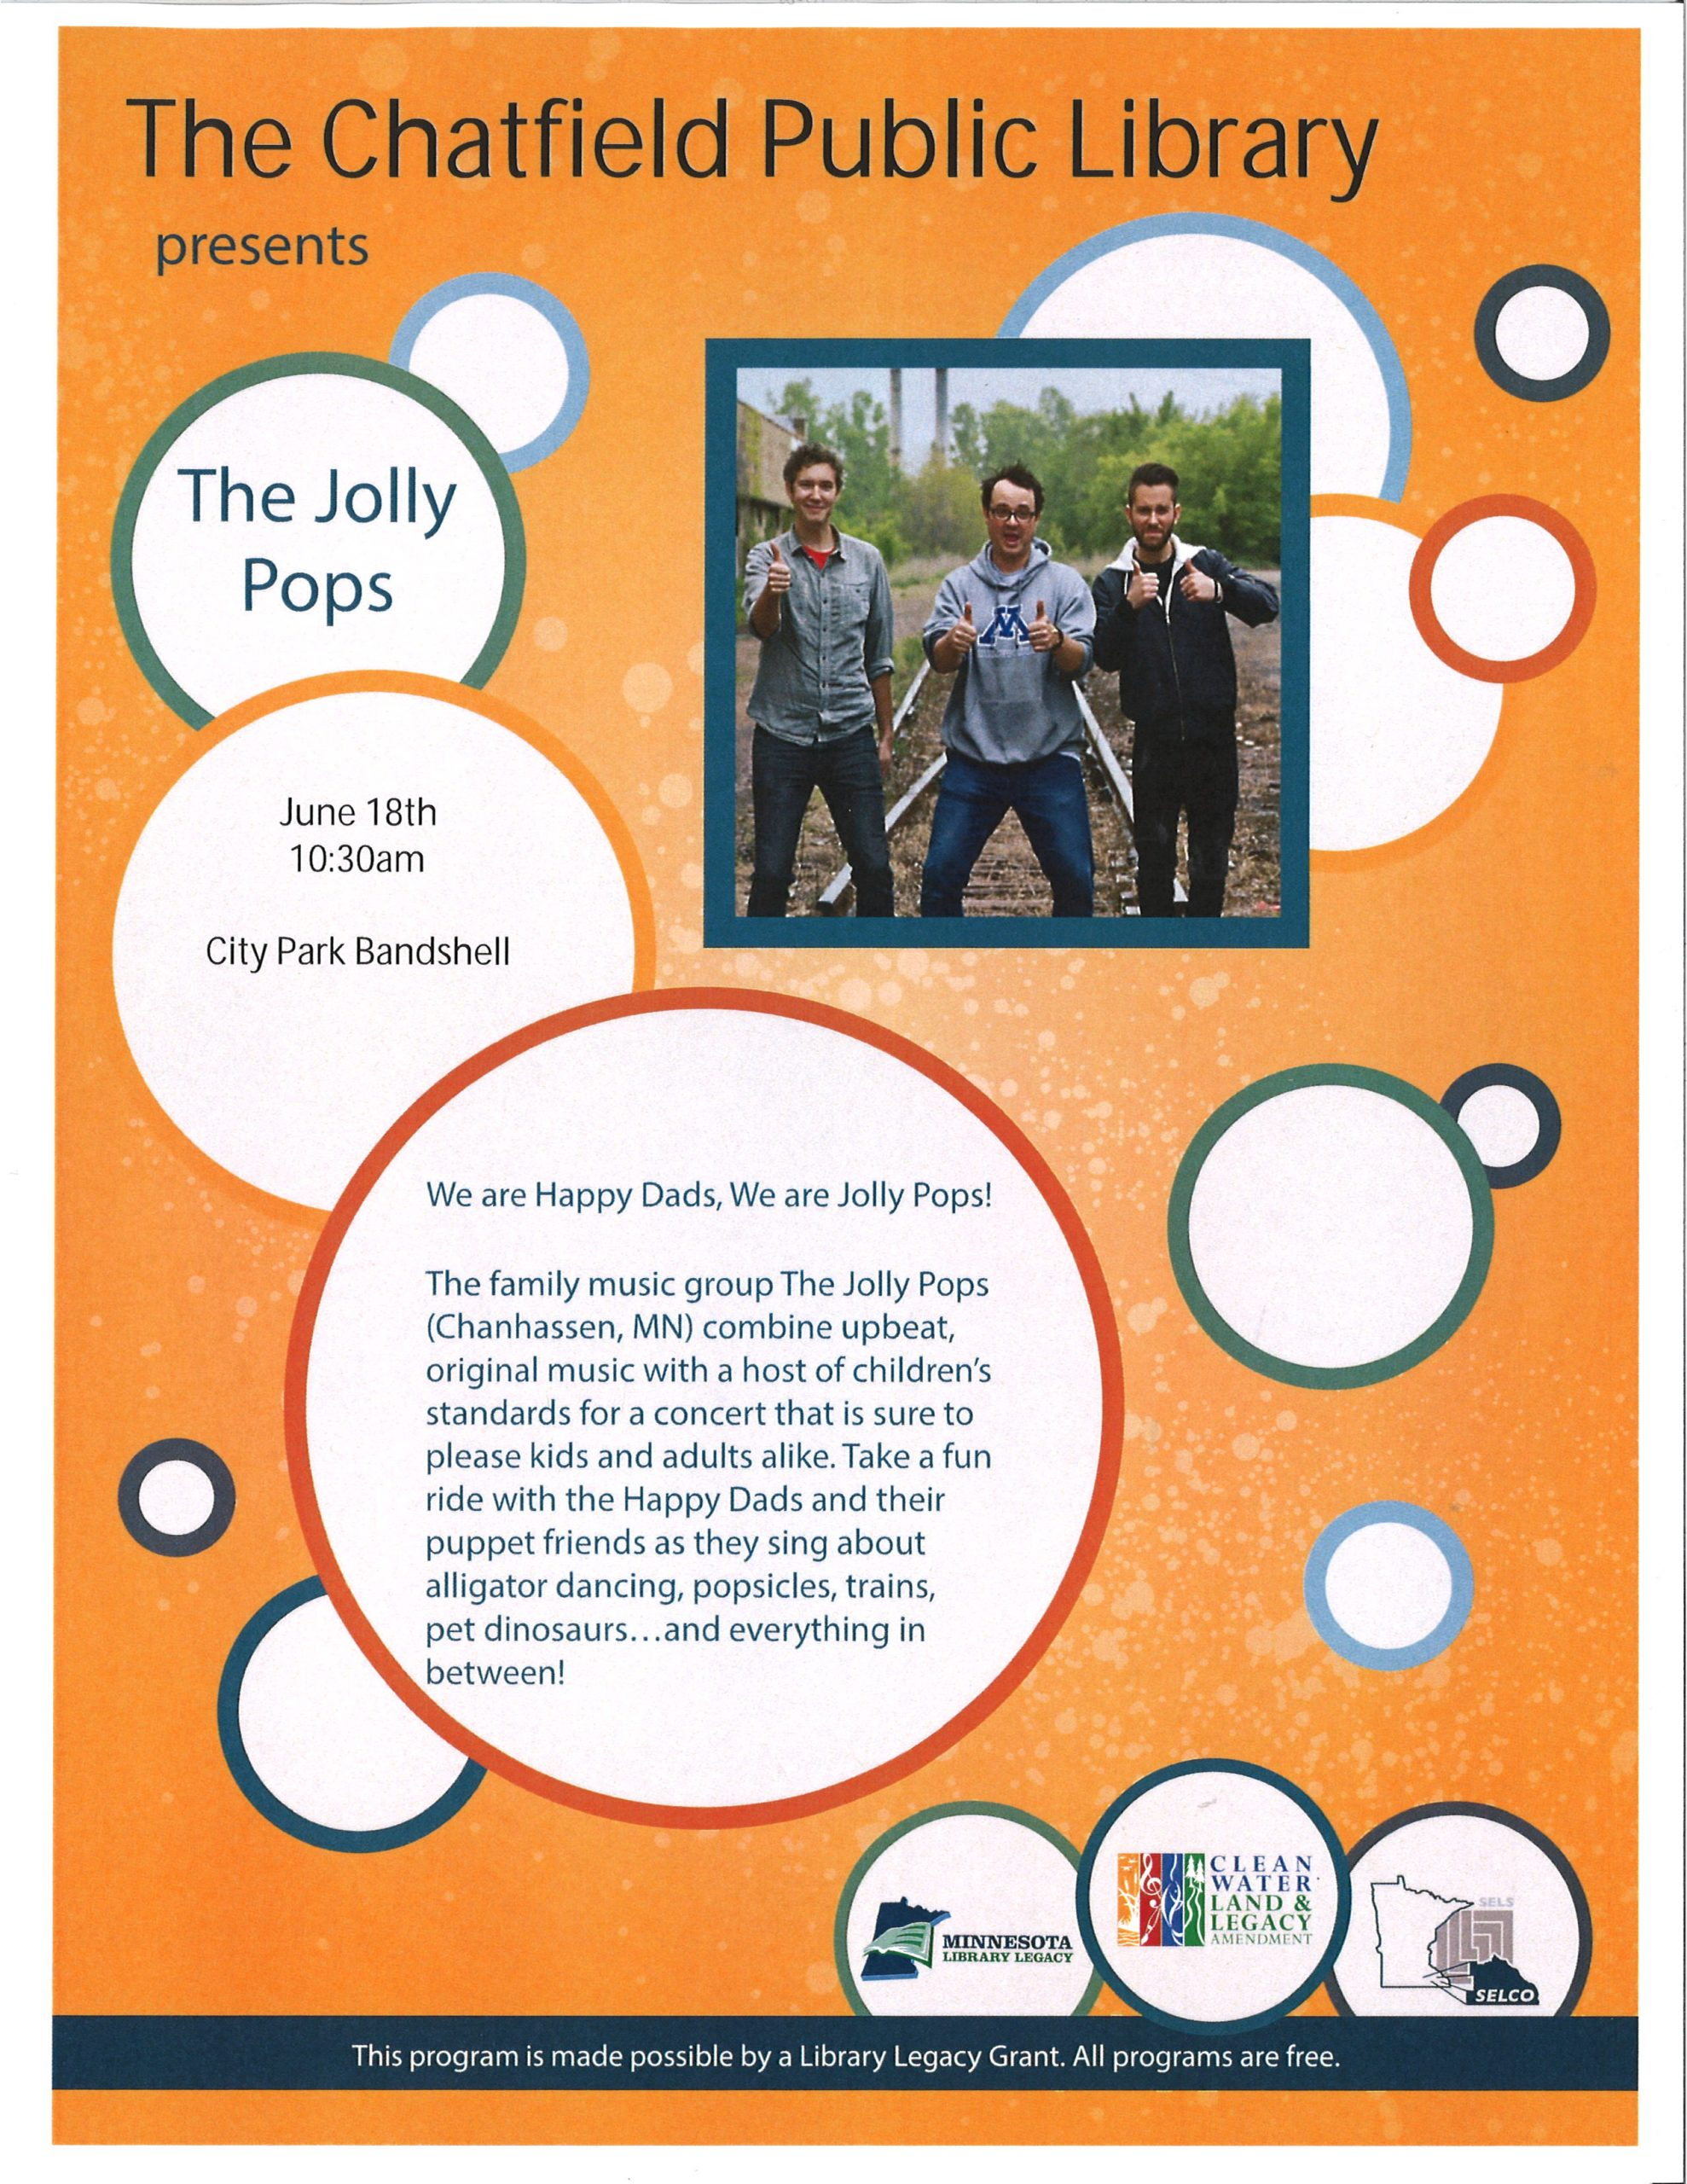 Jolly Pops family concert June 18th at 10:30am city park